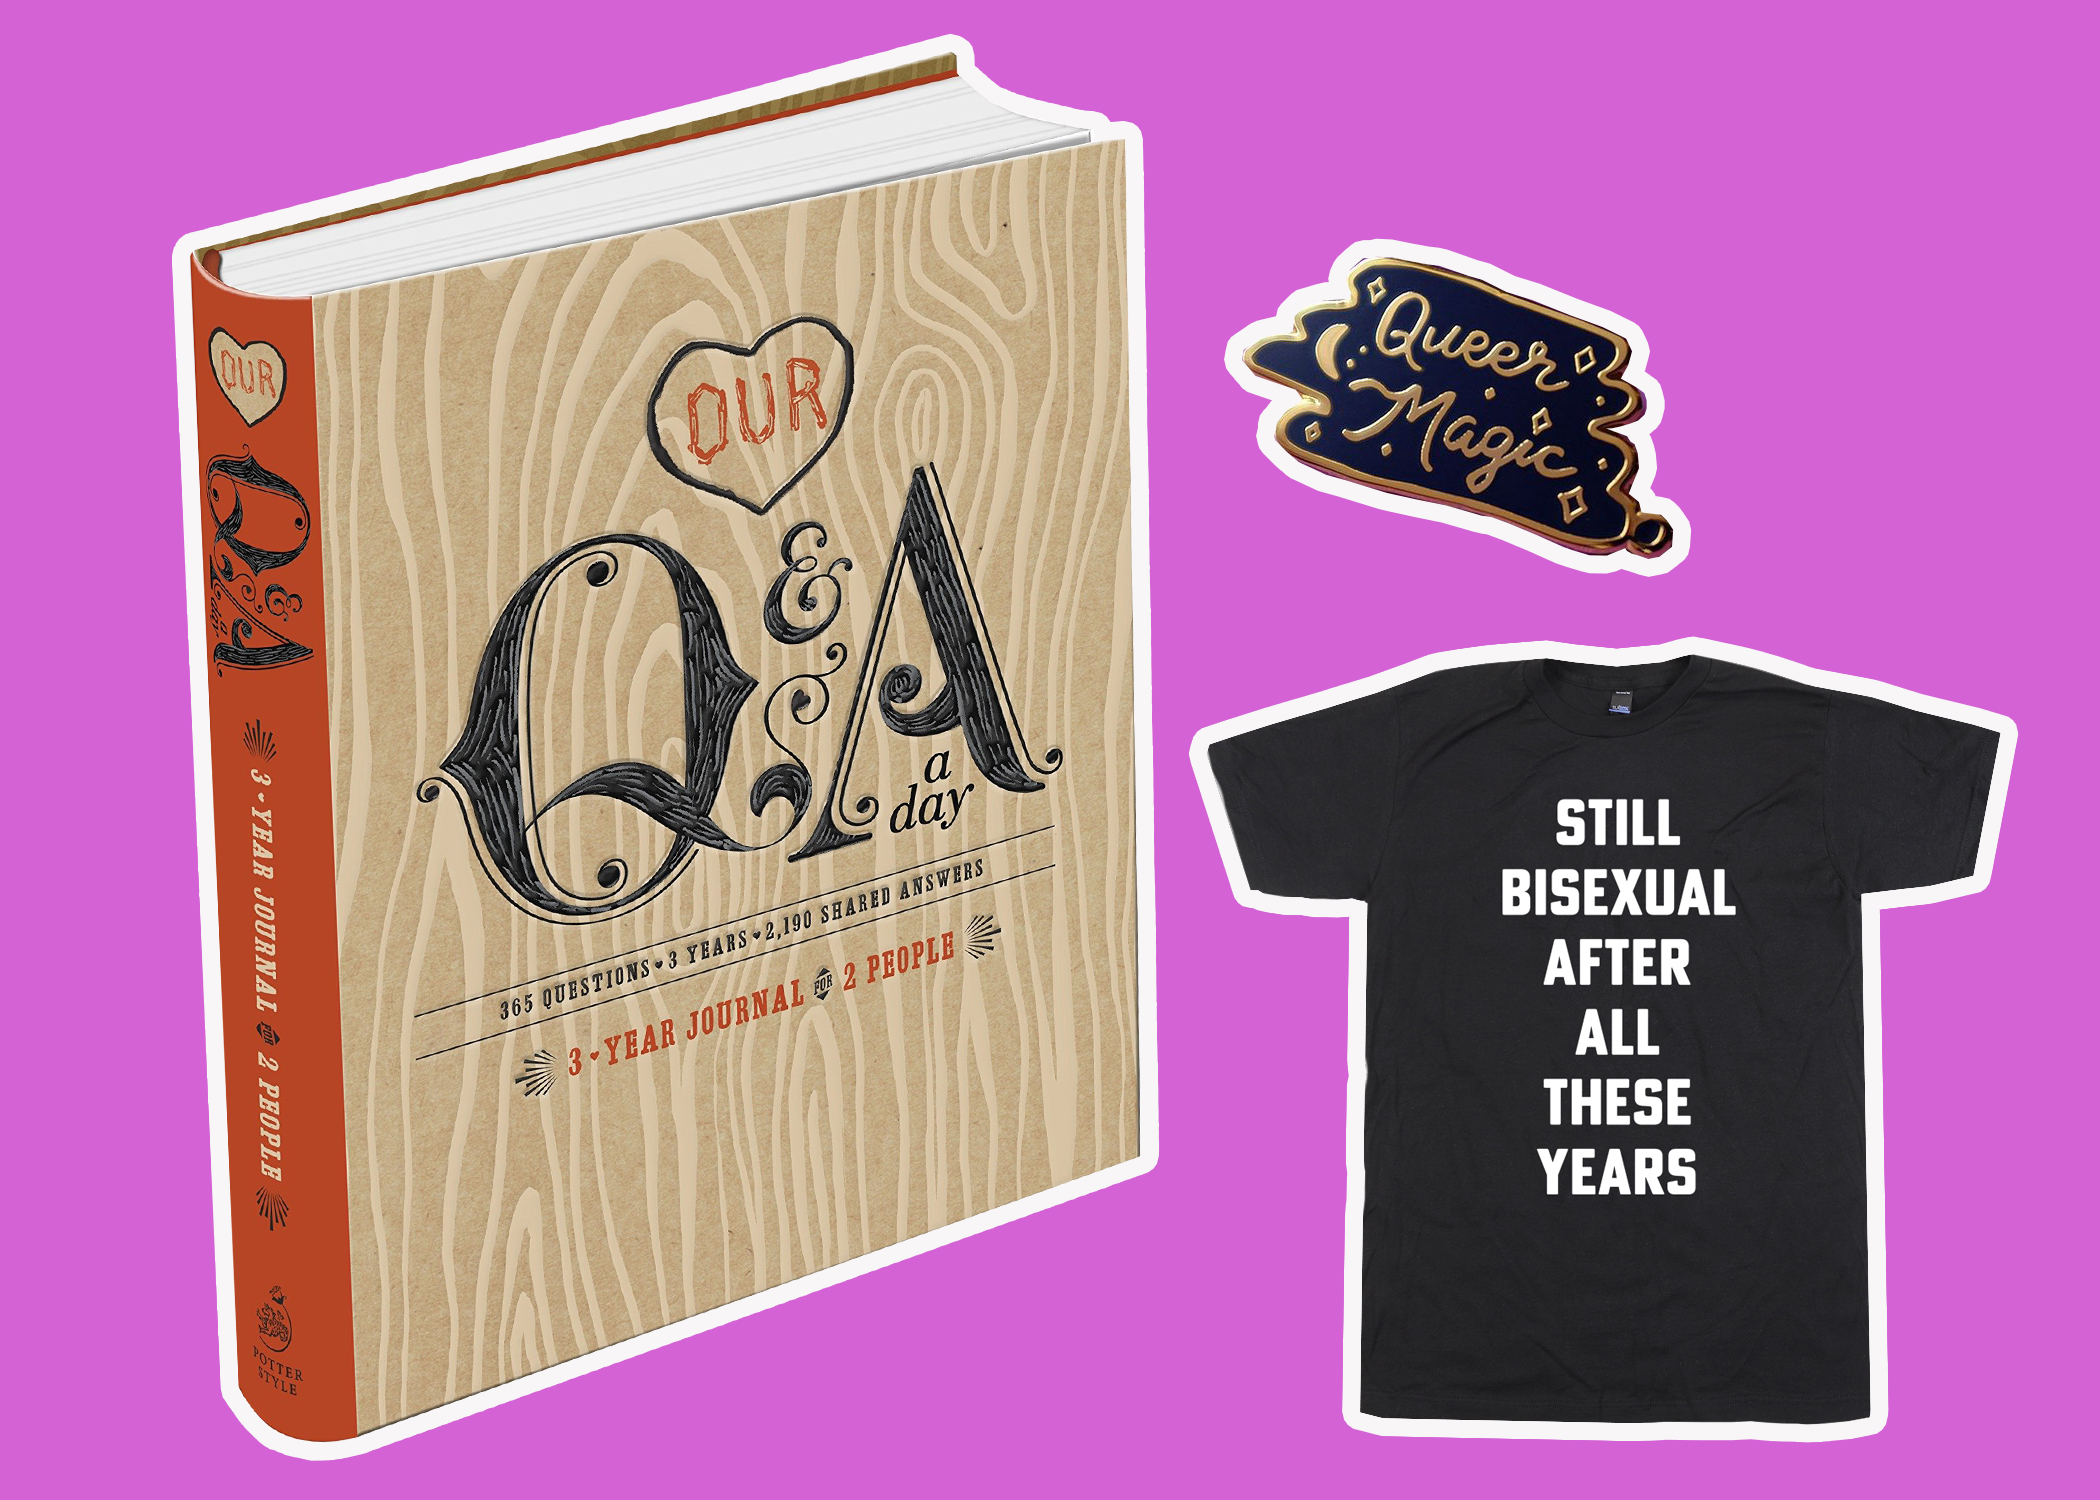 A Valentine's Day gift guide for queer women, because heteronormativity is boring